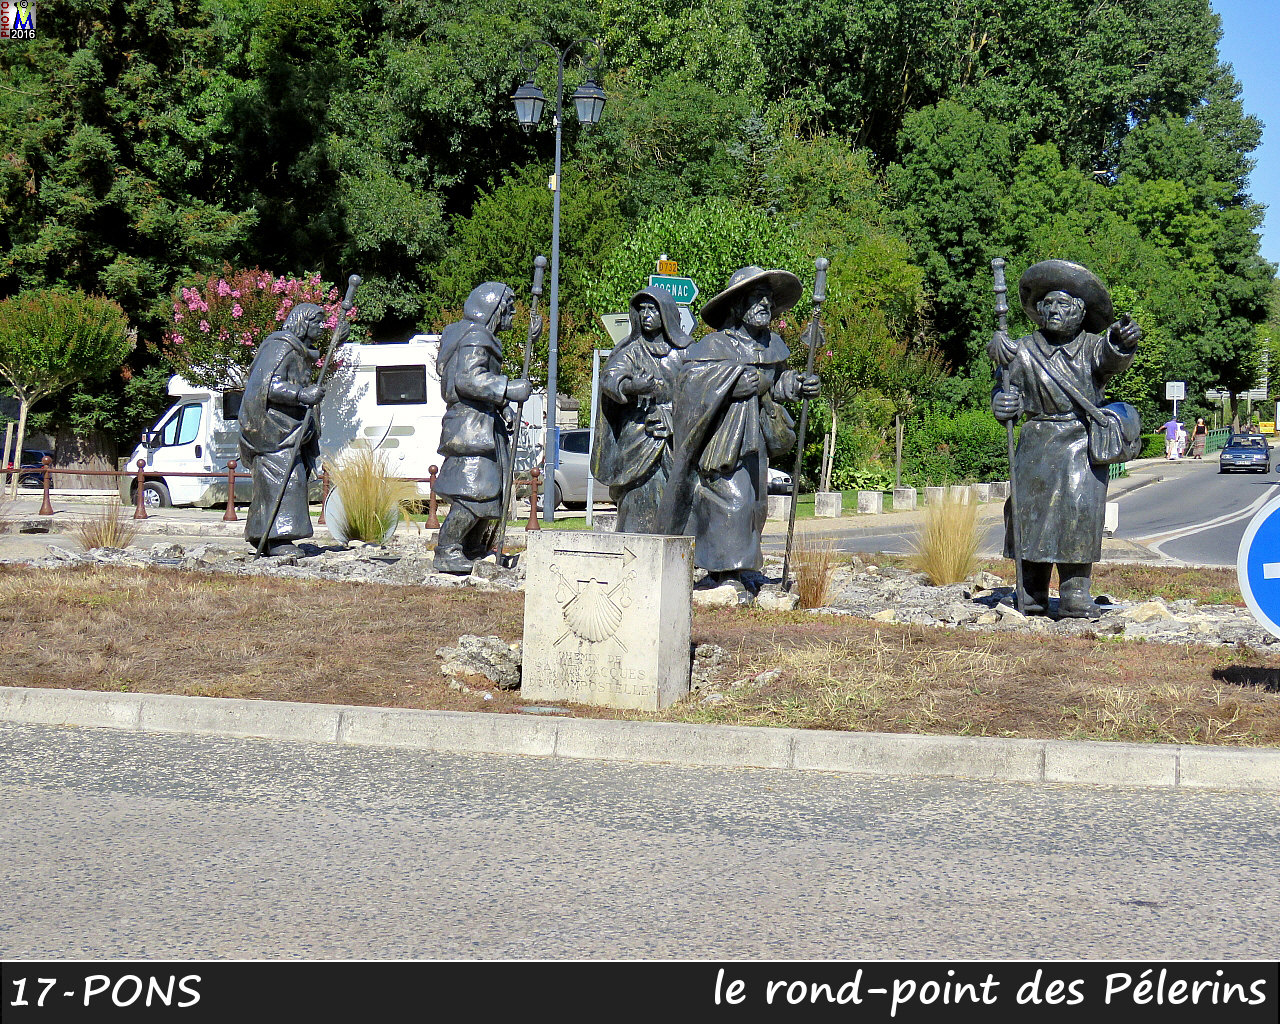 17PONS_Rond-point_1002.jpg